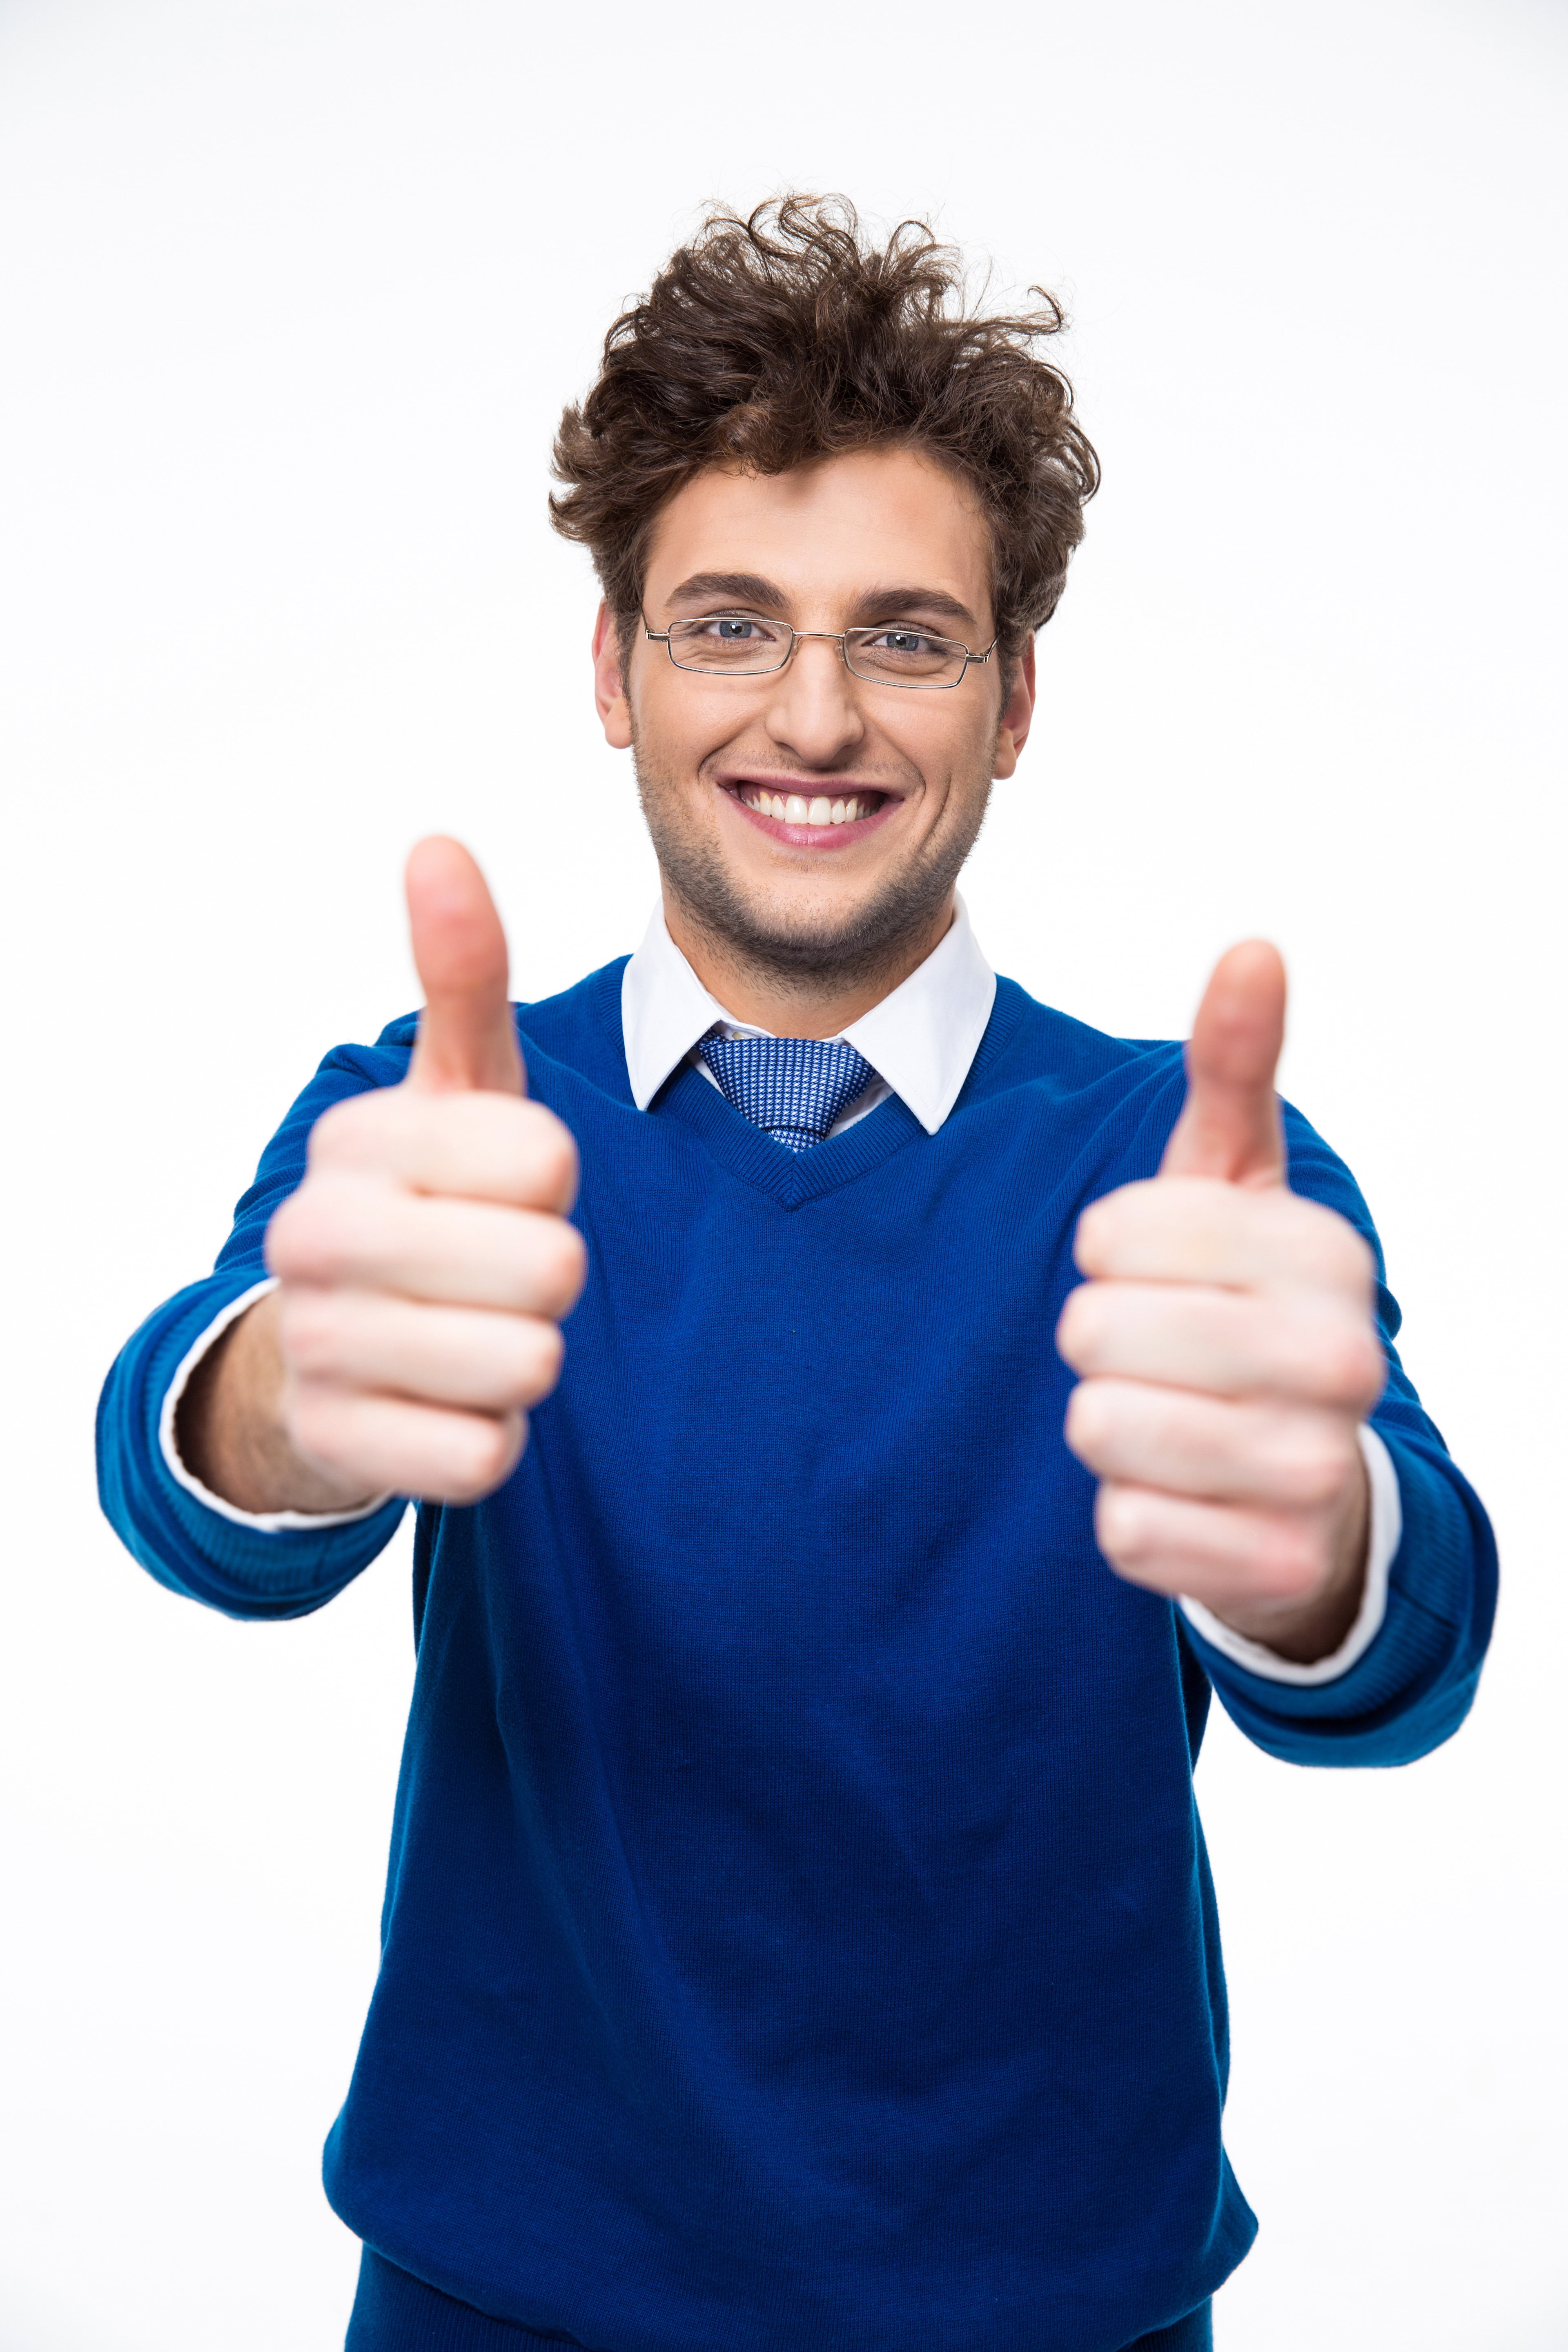 Smiling business man with thumbs up over white background